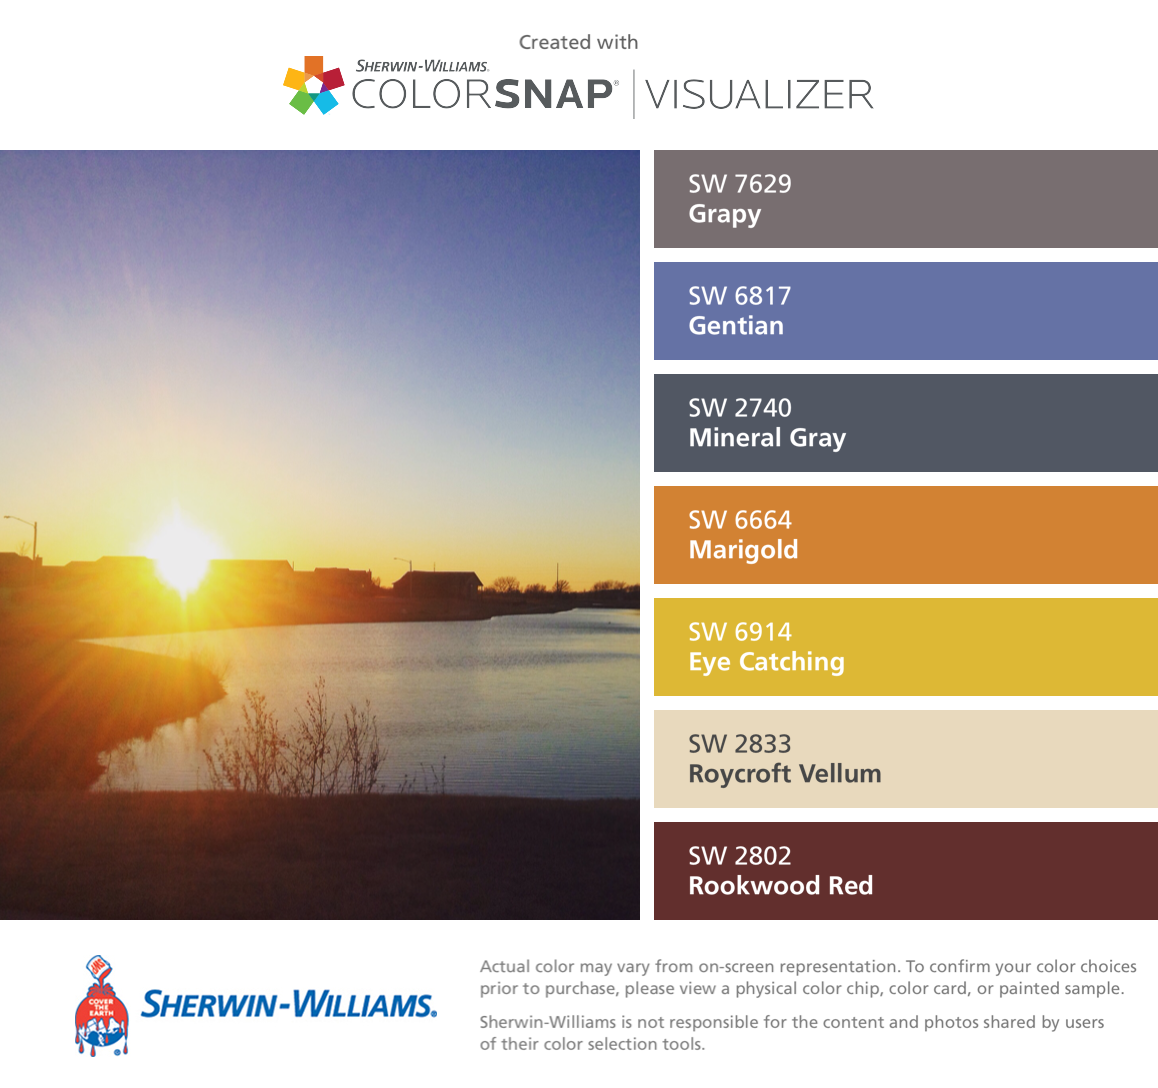 I found these colors with ColorSnap® Visualizer for iPhone by Sherwin-Williams: Grapy (SW 7629), Gentian (SW 6817), Mineral Gray (SW 2740), Marigold (SW 6664), Eye Catching (SW 6914), Roycroft Vellum (SW 2833), Rookwood Red (SW 2802).